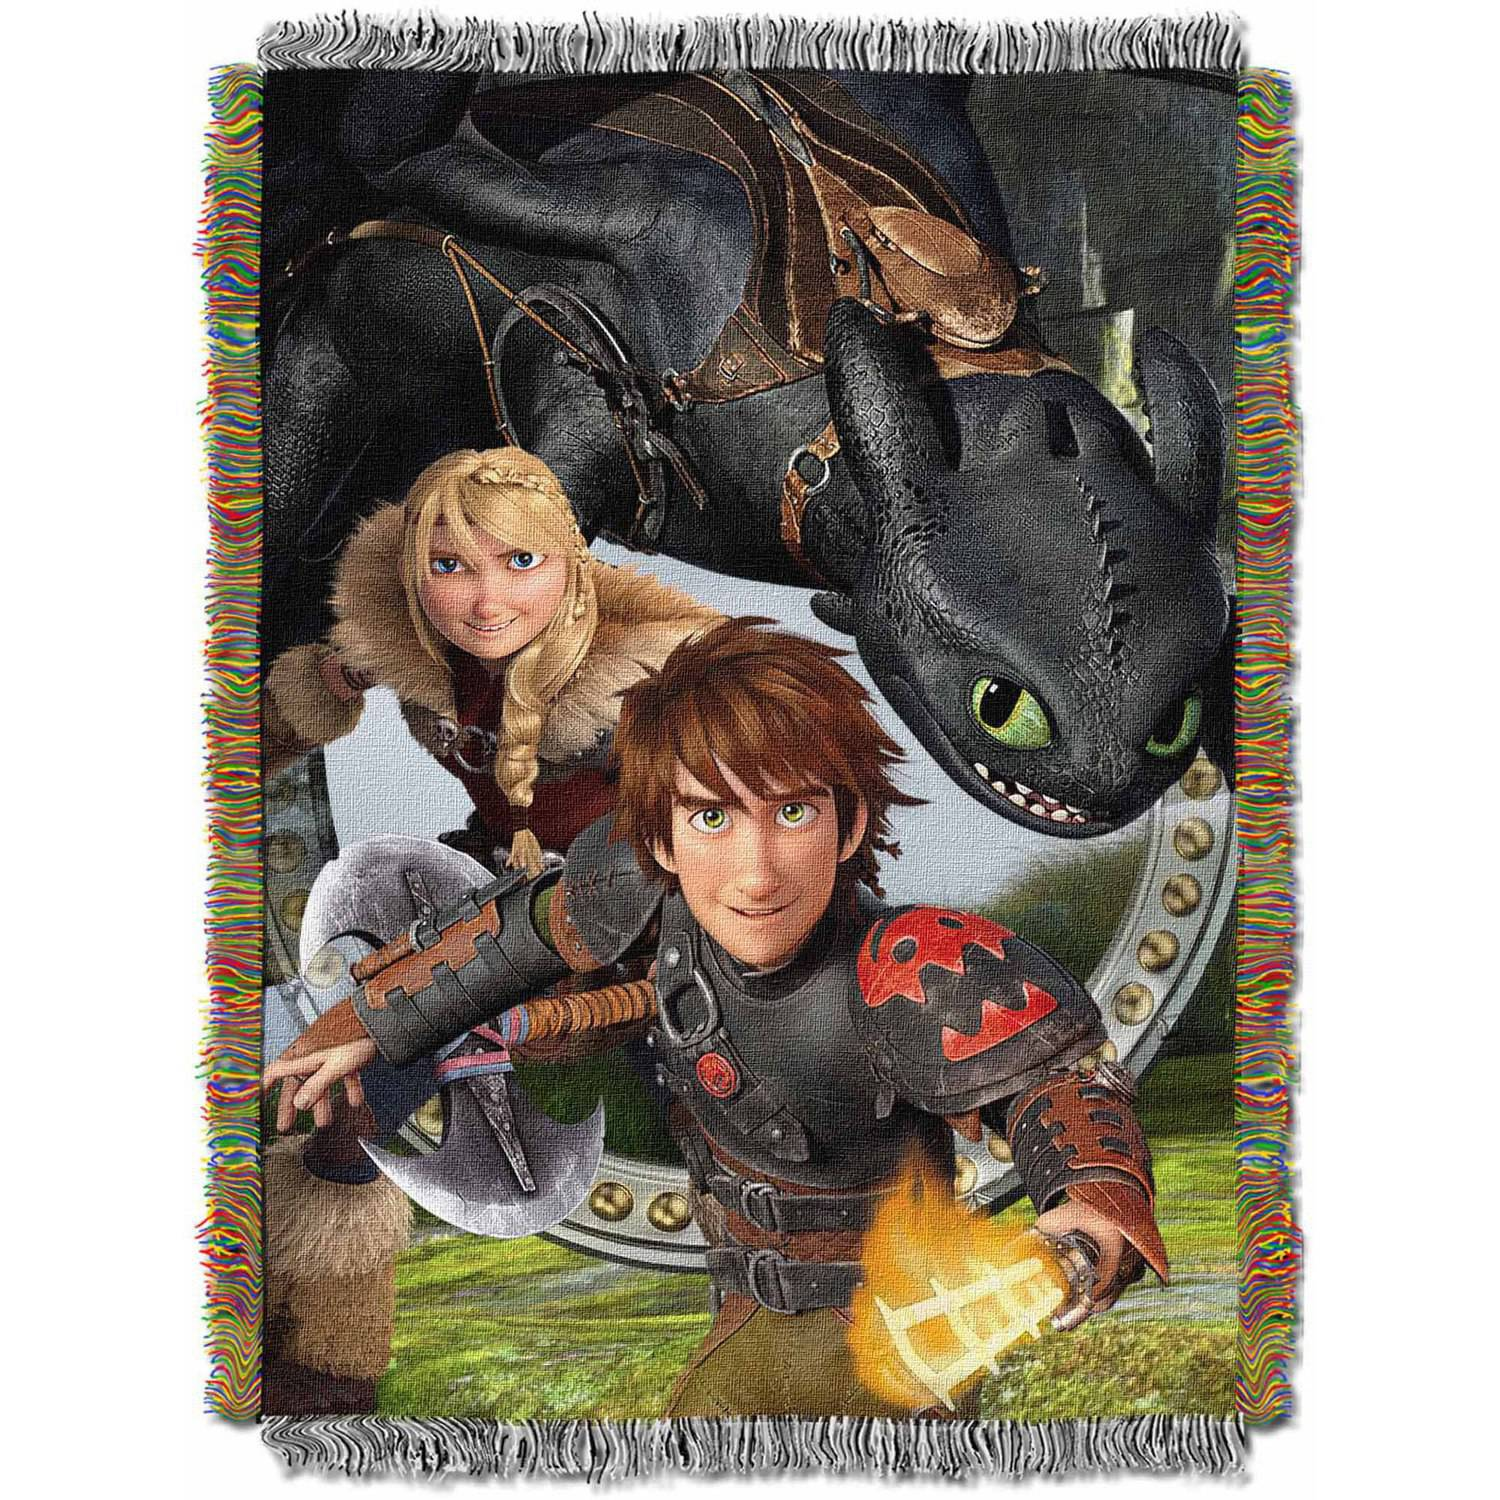 "DreamWorks How to Train Your Dragon 2 ""Imagine Dragons"" 48"" x 60"" Woven Tapestry Throw"